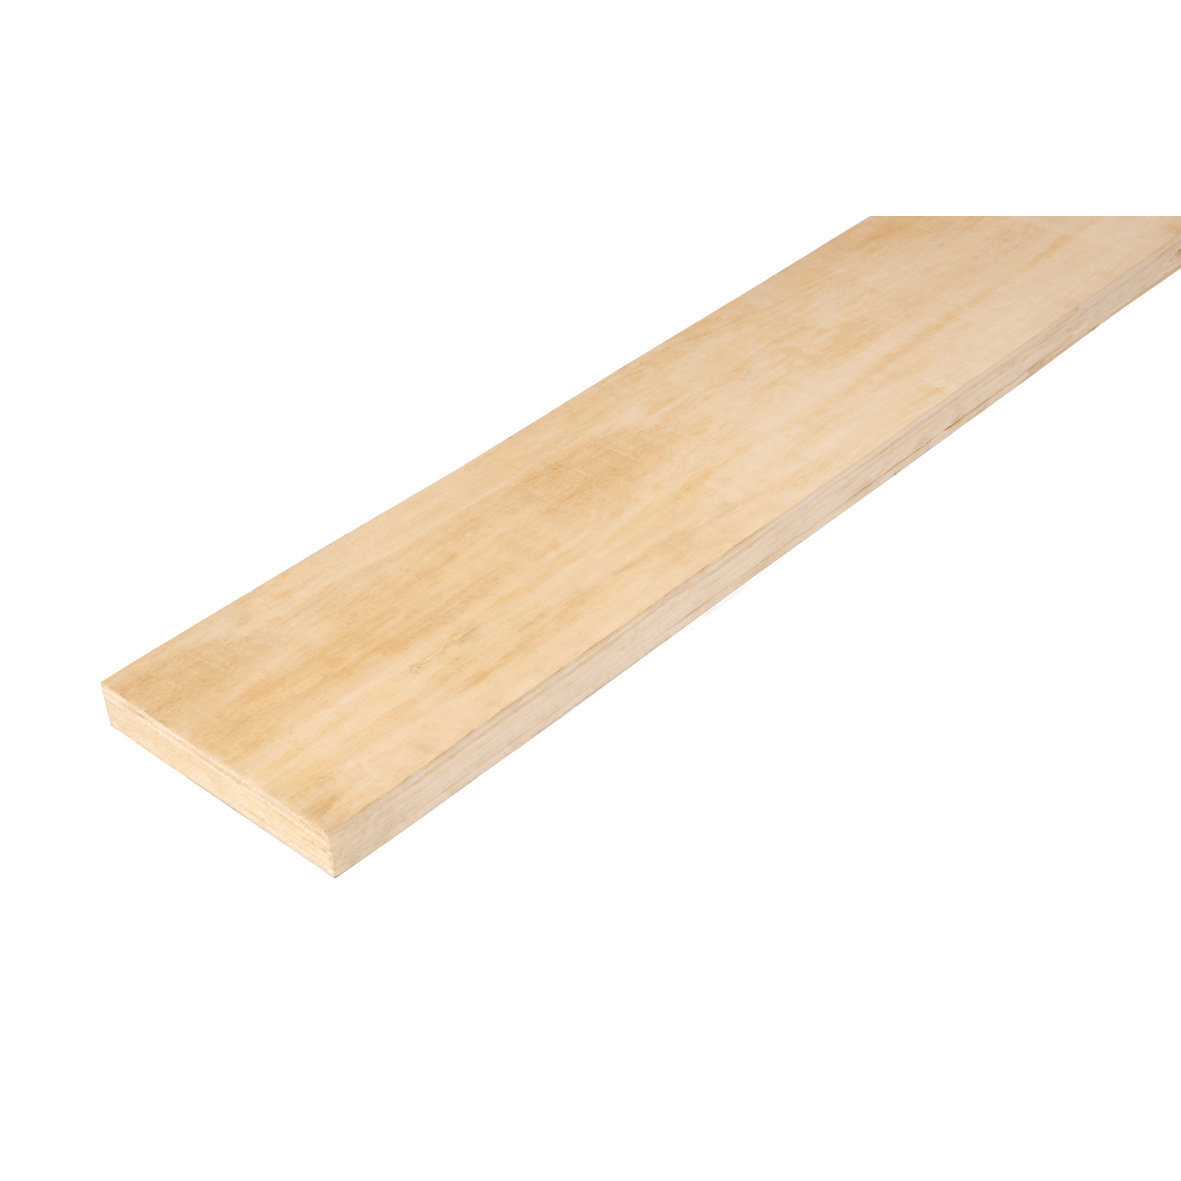 http://i00.i.aliimg.com/photo/219559685/Wood_Plank.jpg